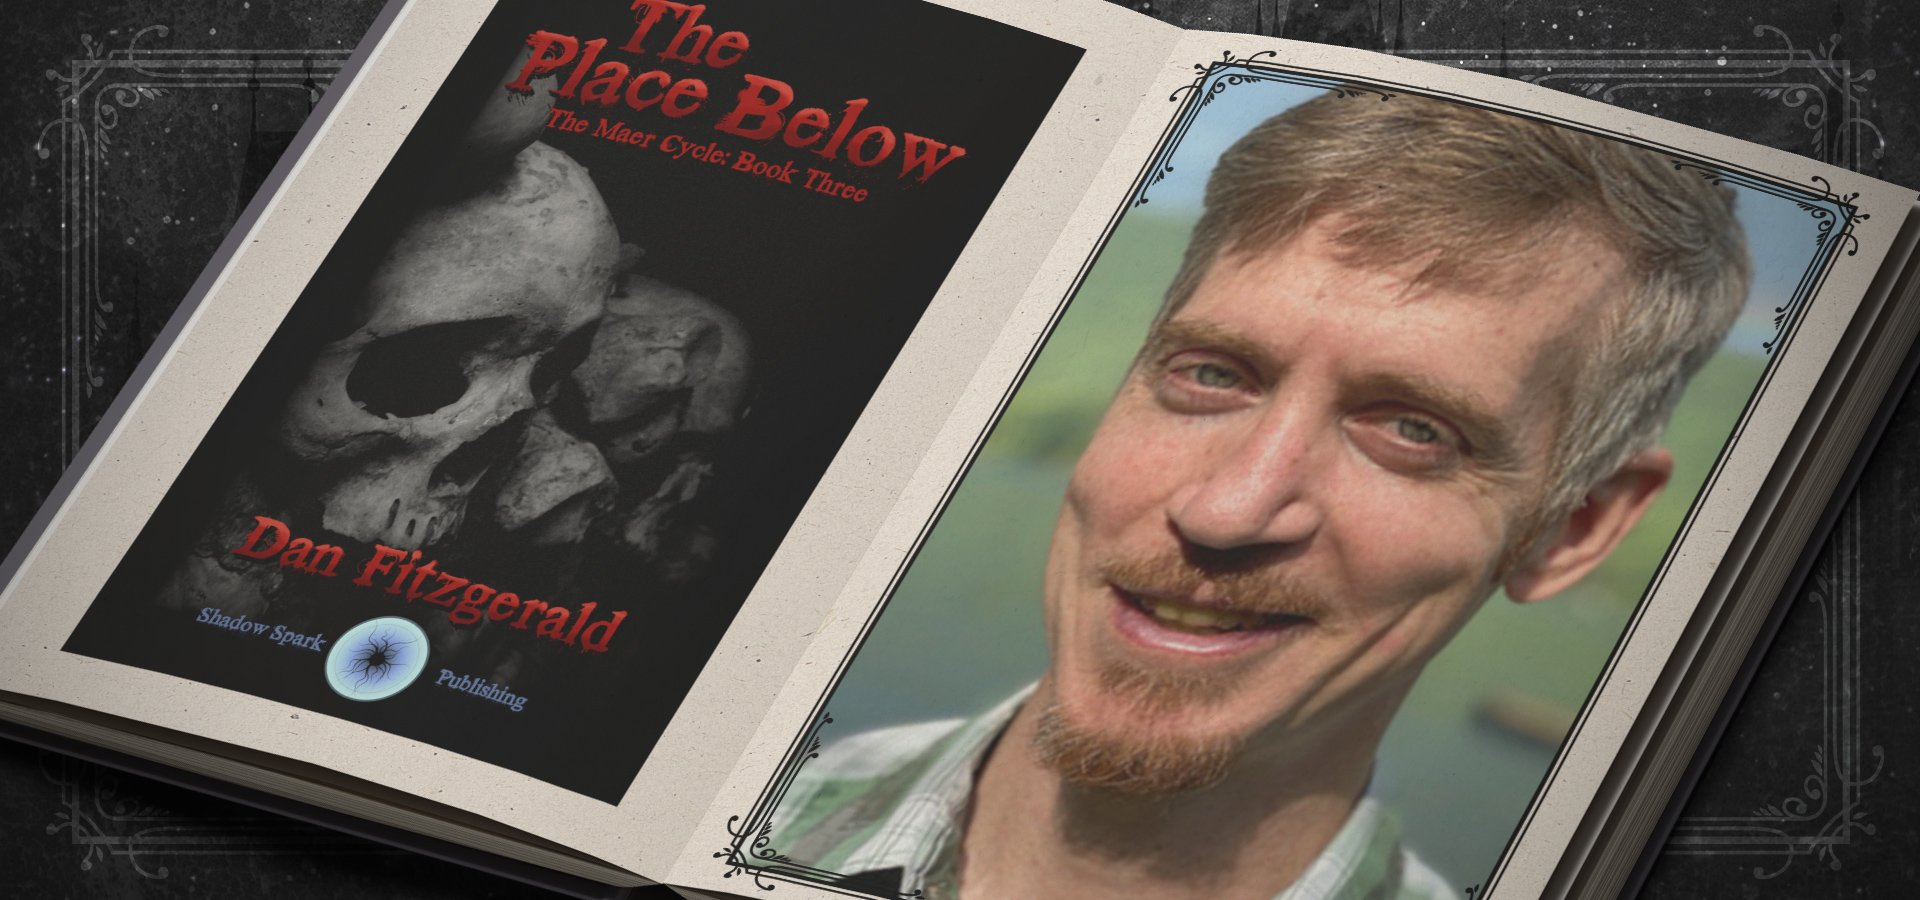 Storytellers on Tour Presents: The Place Below by Dan Fitzgerald